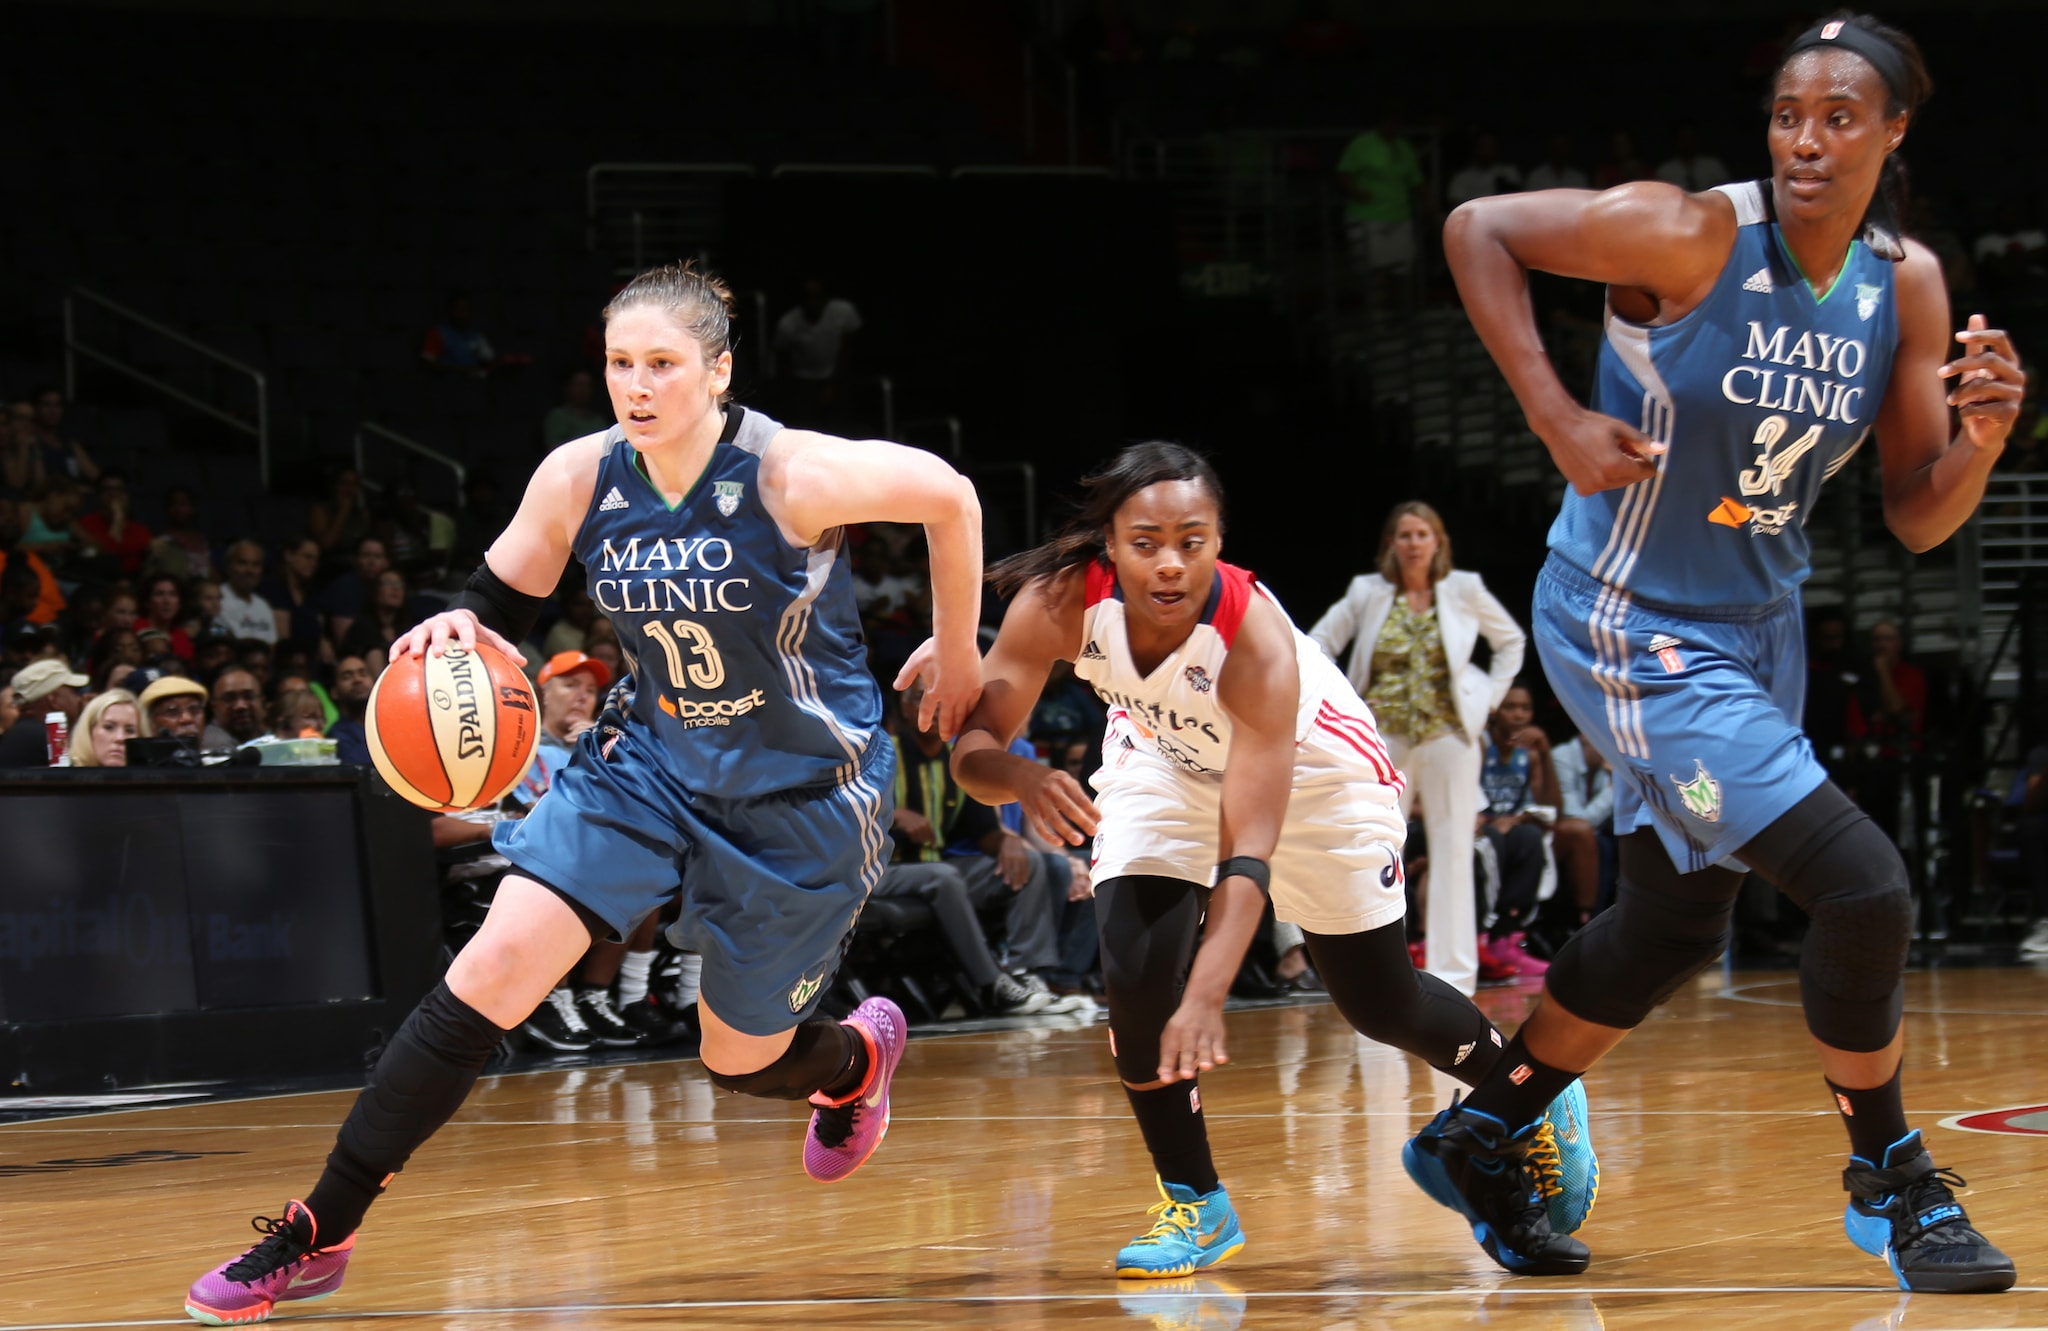 Lynx guard Lindsay Whalen had a great game against Washington, notching a double-double and finishing with 13 points, 10 rebounds and four assists in the loss.